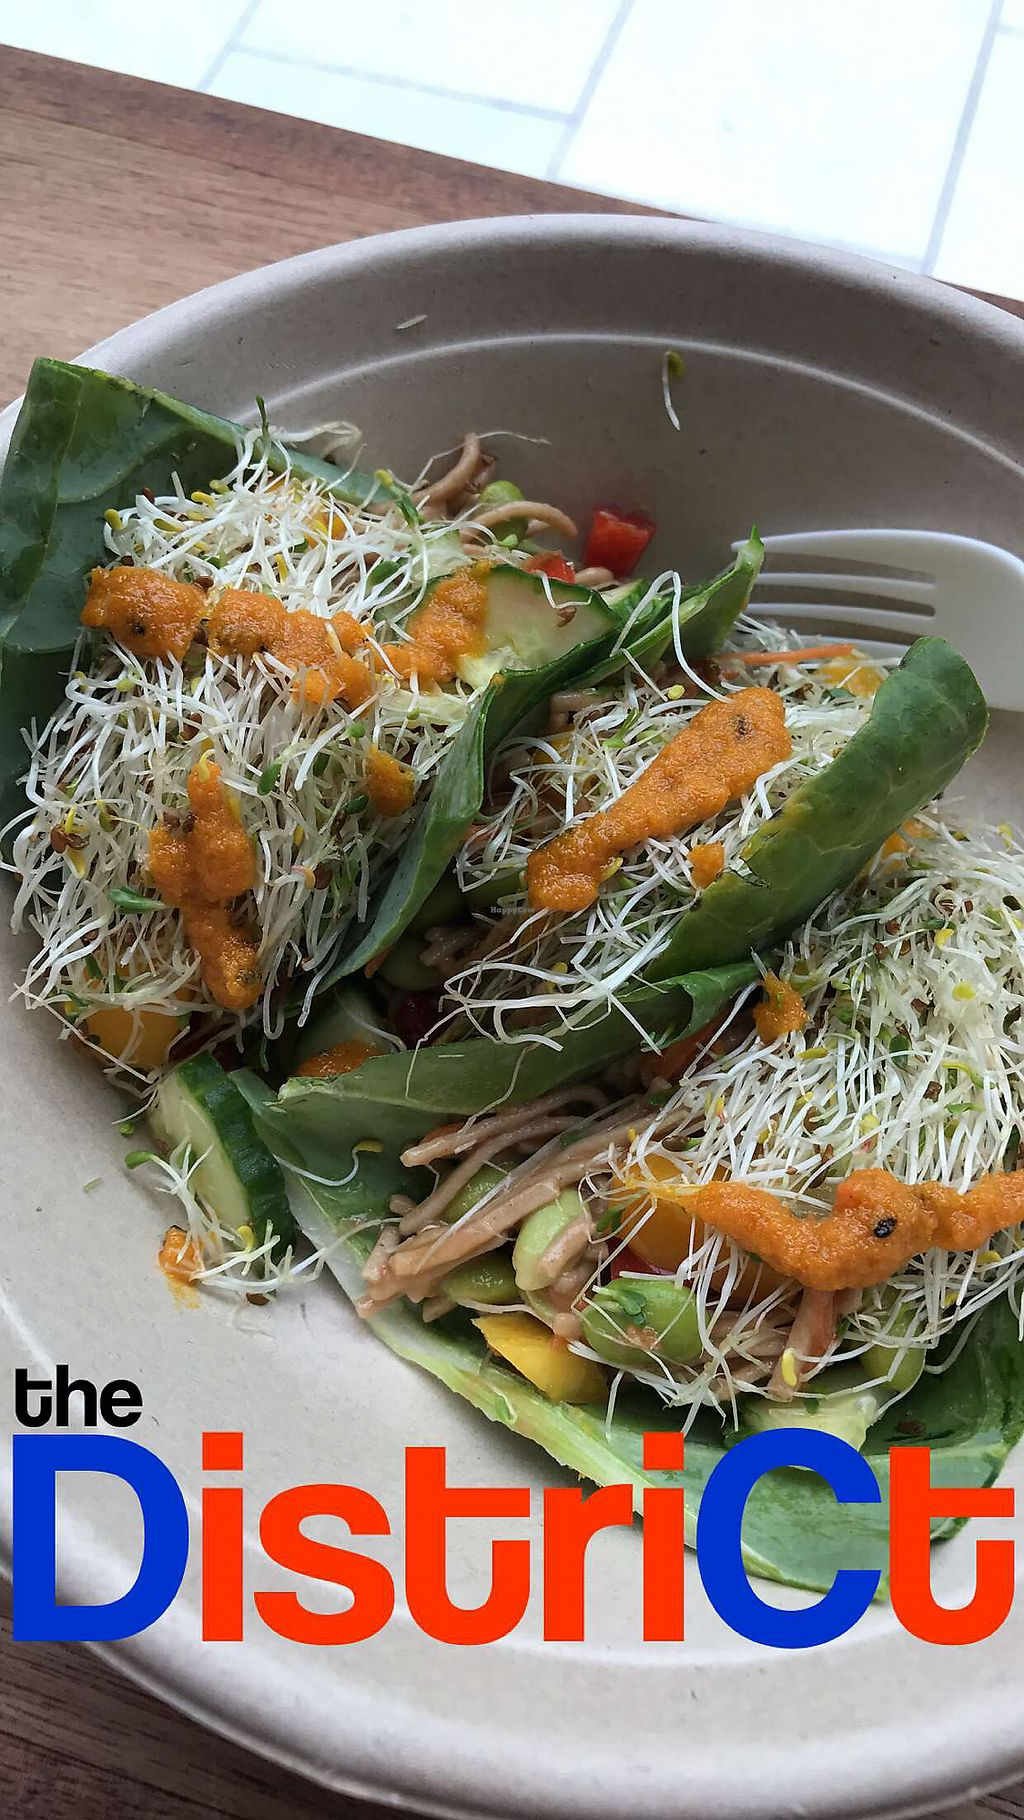 """Photo of Fruitive  by <a href=""""/members/profile/OliviaLimone"""">OliviaLimone</a> <br/>collard green tacos <br/> September 3, 2017  - <a href='/contact/abuse/image/69107/300419'>Report</a>"""